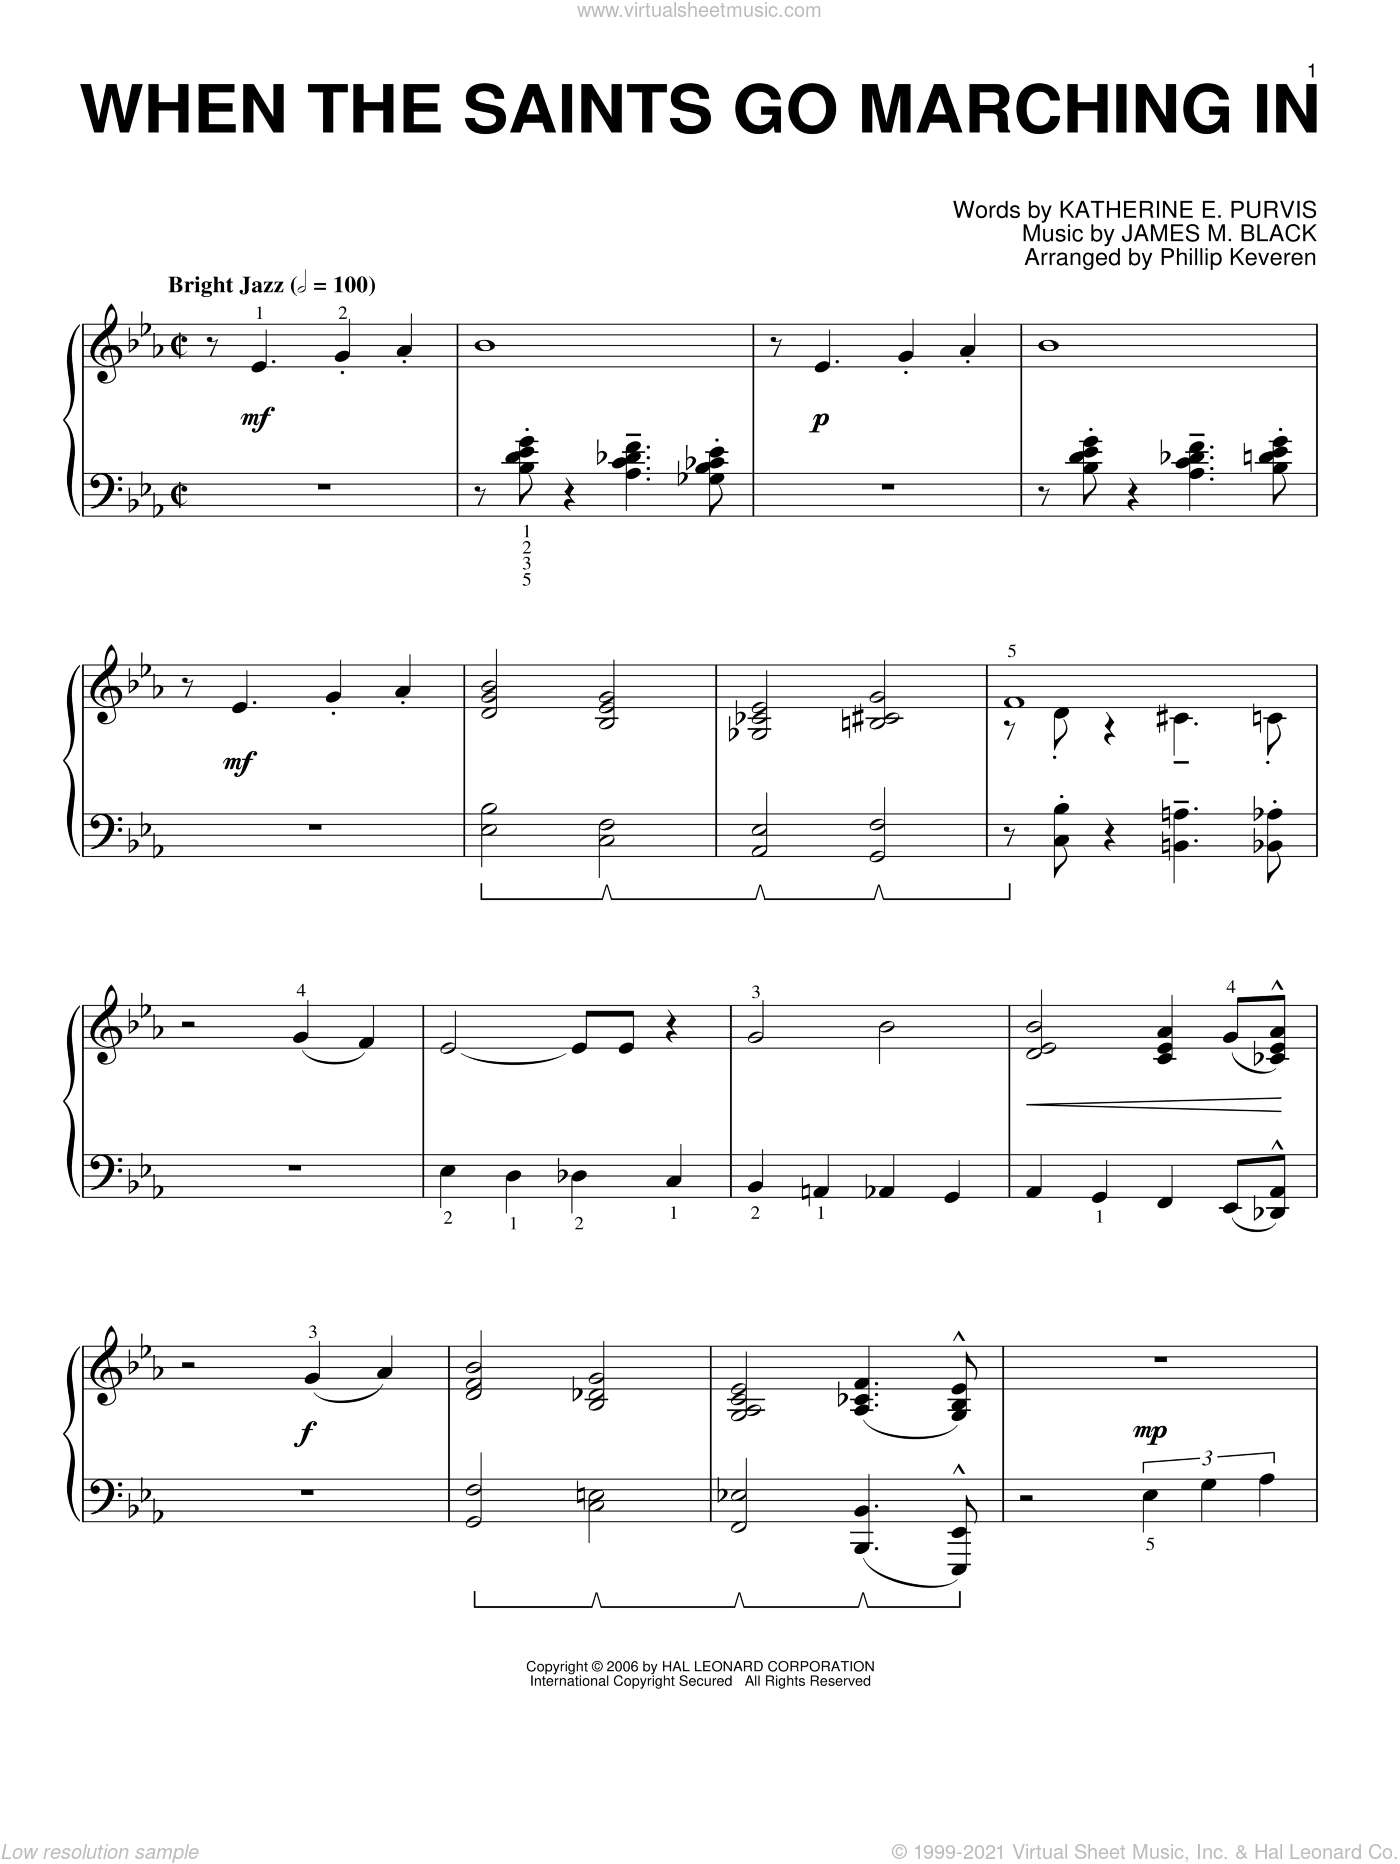 When The Saints Go Marching In sheet music for piano solo by Louis Armstrong, Phillip Keveren, James M. Black and Katherine E. Purvis, intermediate skill level